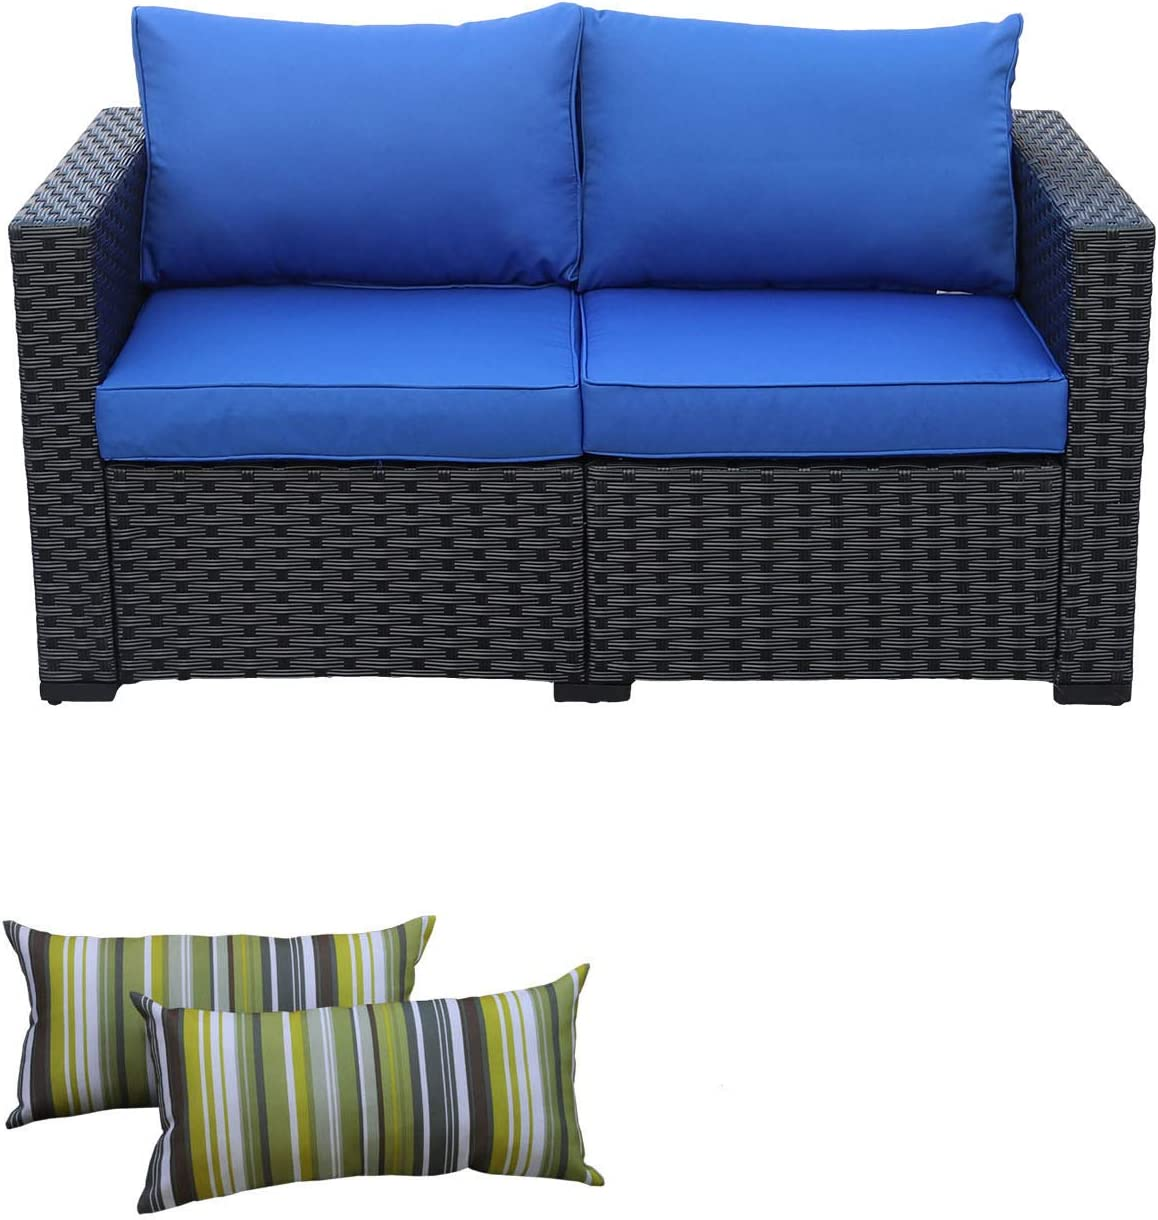 Patio PE Wicker Sofa Outdoor Garden Love Seat Chair Couch Furniture Black Rattan with Blue Cushion